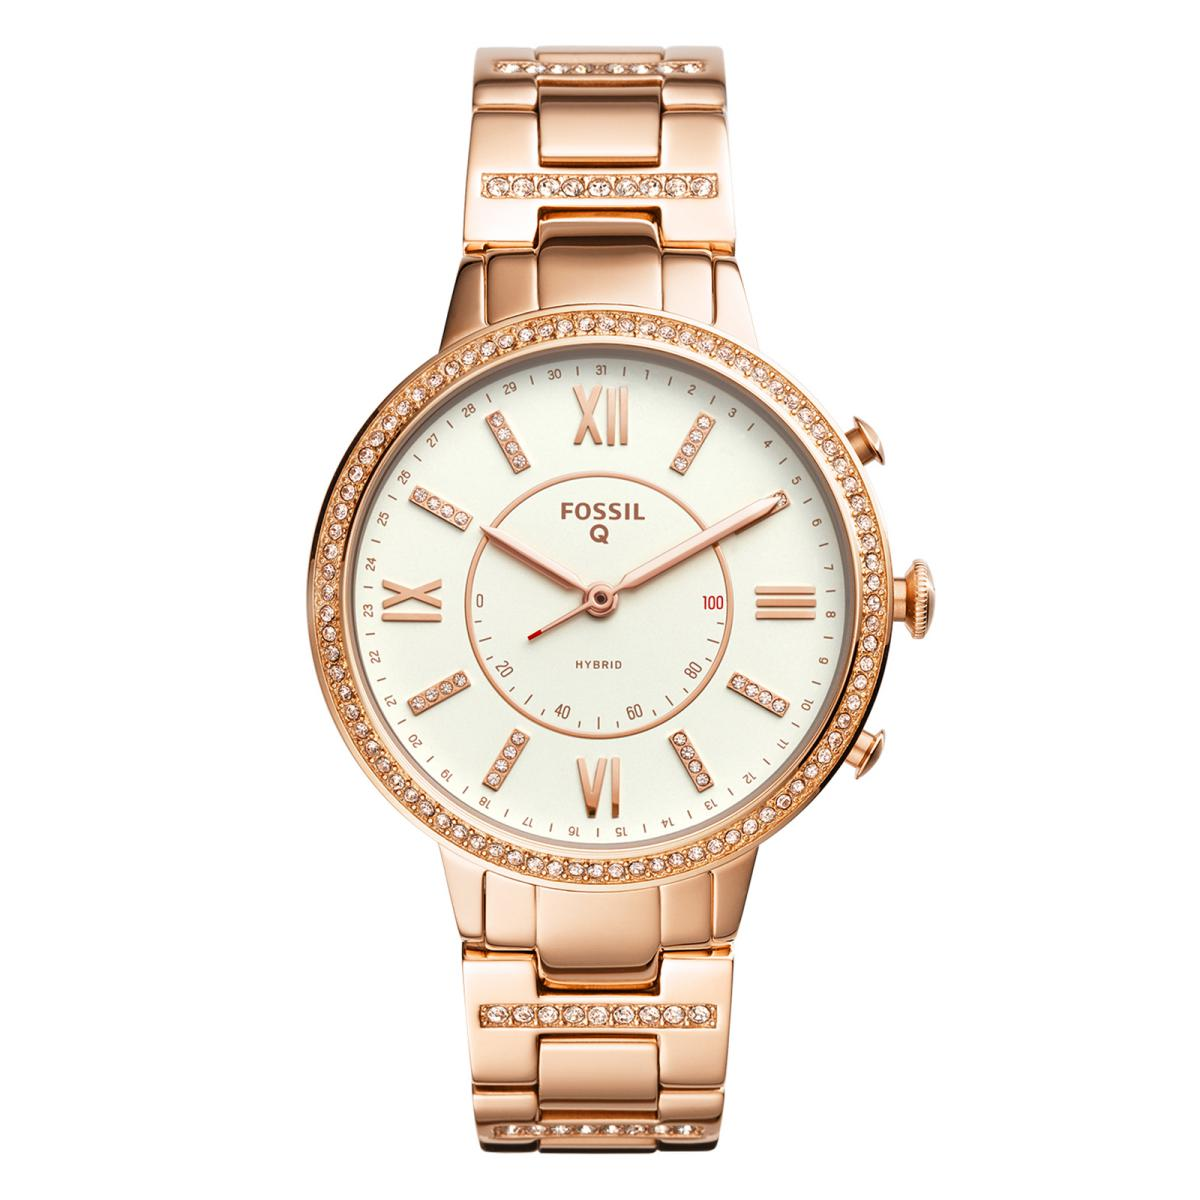 b8f5367c6411 Reloj Fossil - FTW5010 - Mujer - Time Square